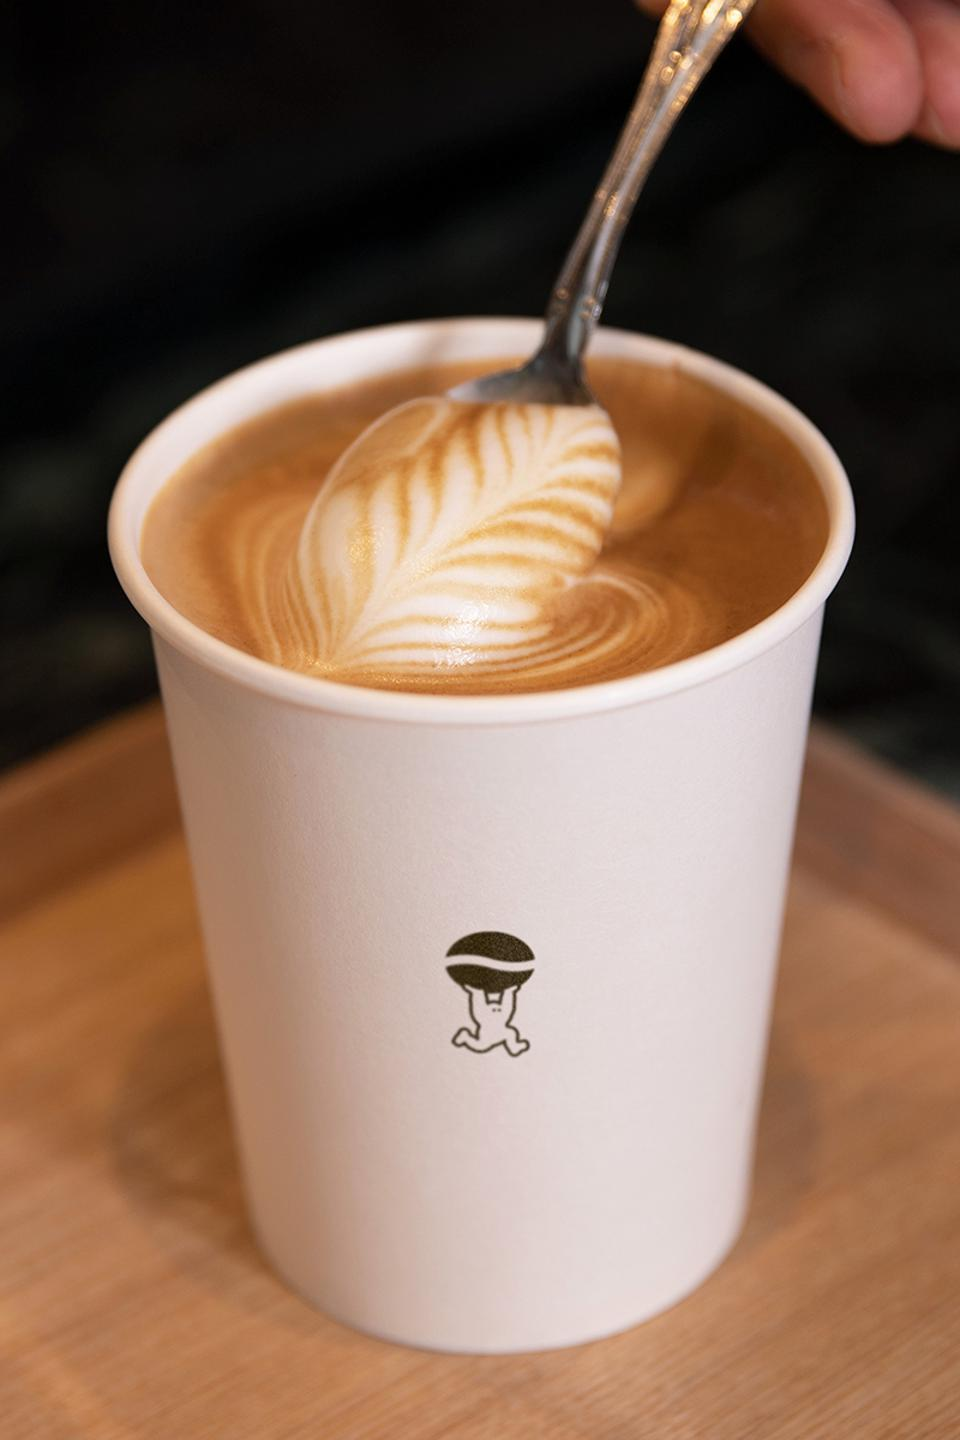 Hypebeans' menu draws inspirations from Hong Kong-style cafés to create contemporary beverages, crafted with a unique blend of coffee beans.